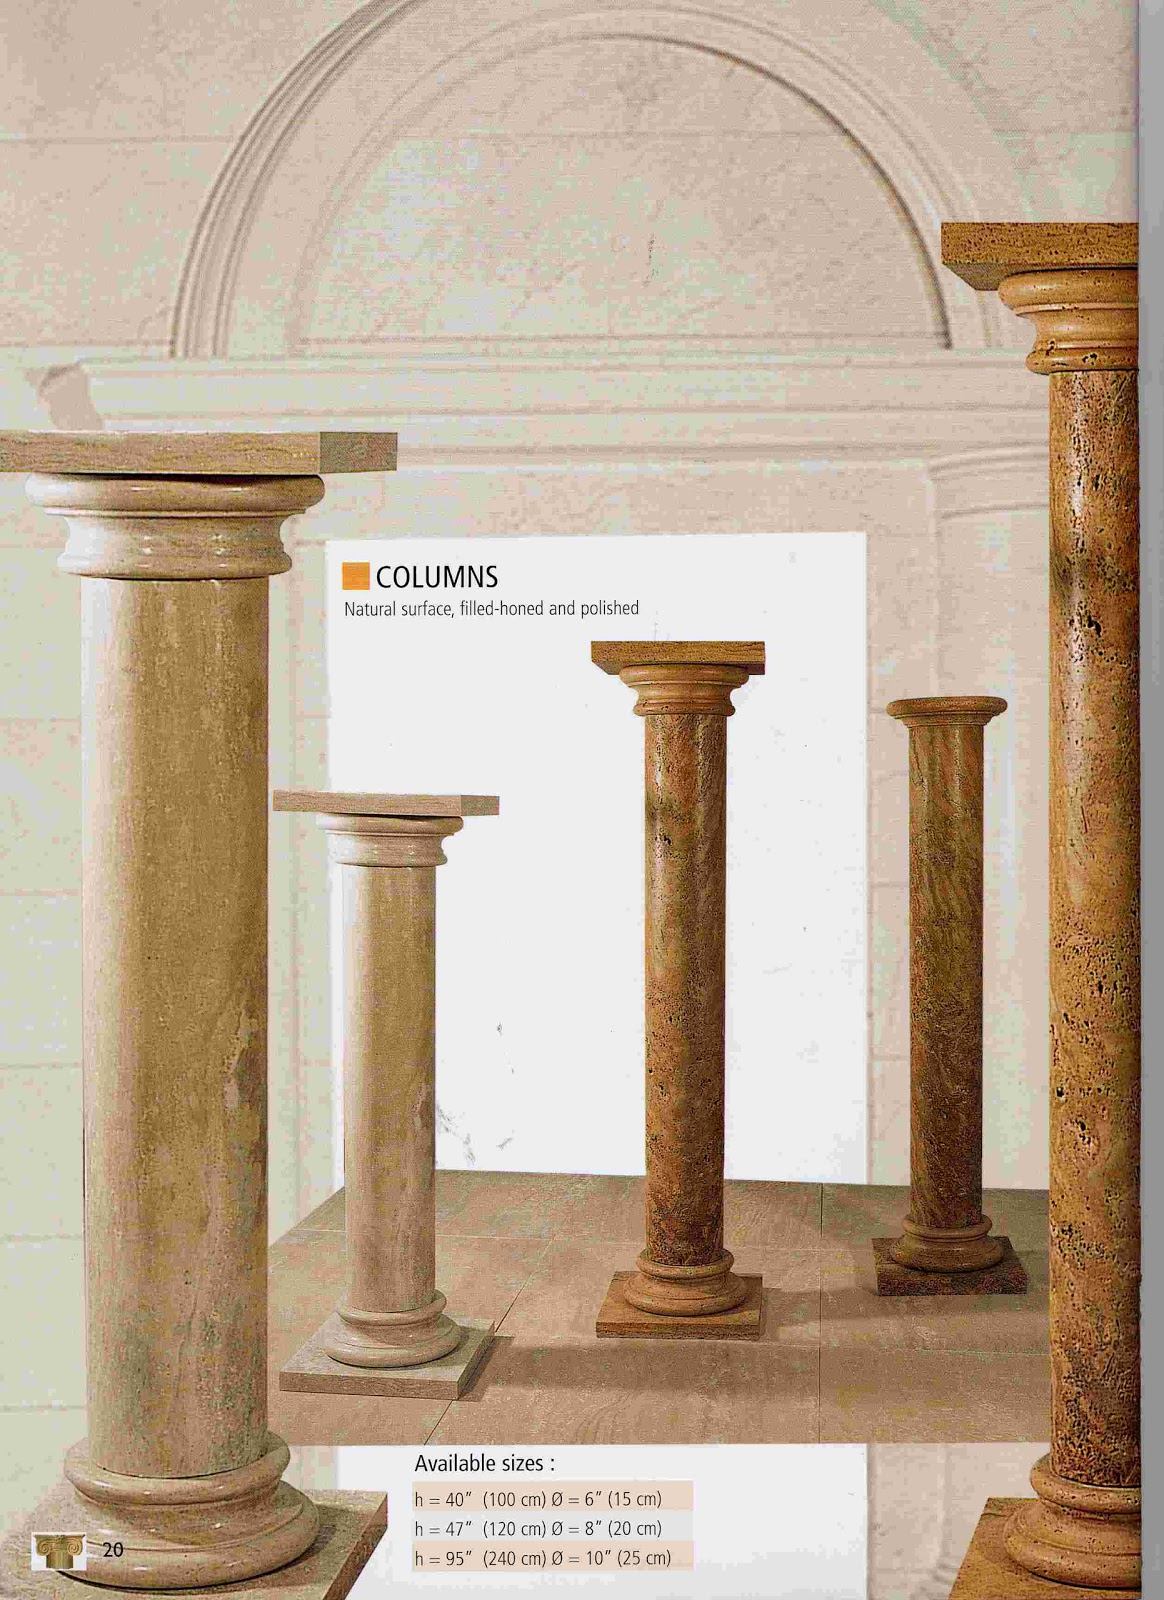 Outsource your structural column design to skilled for Columns designs